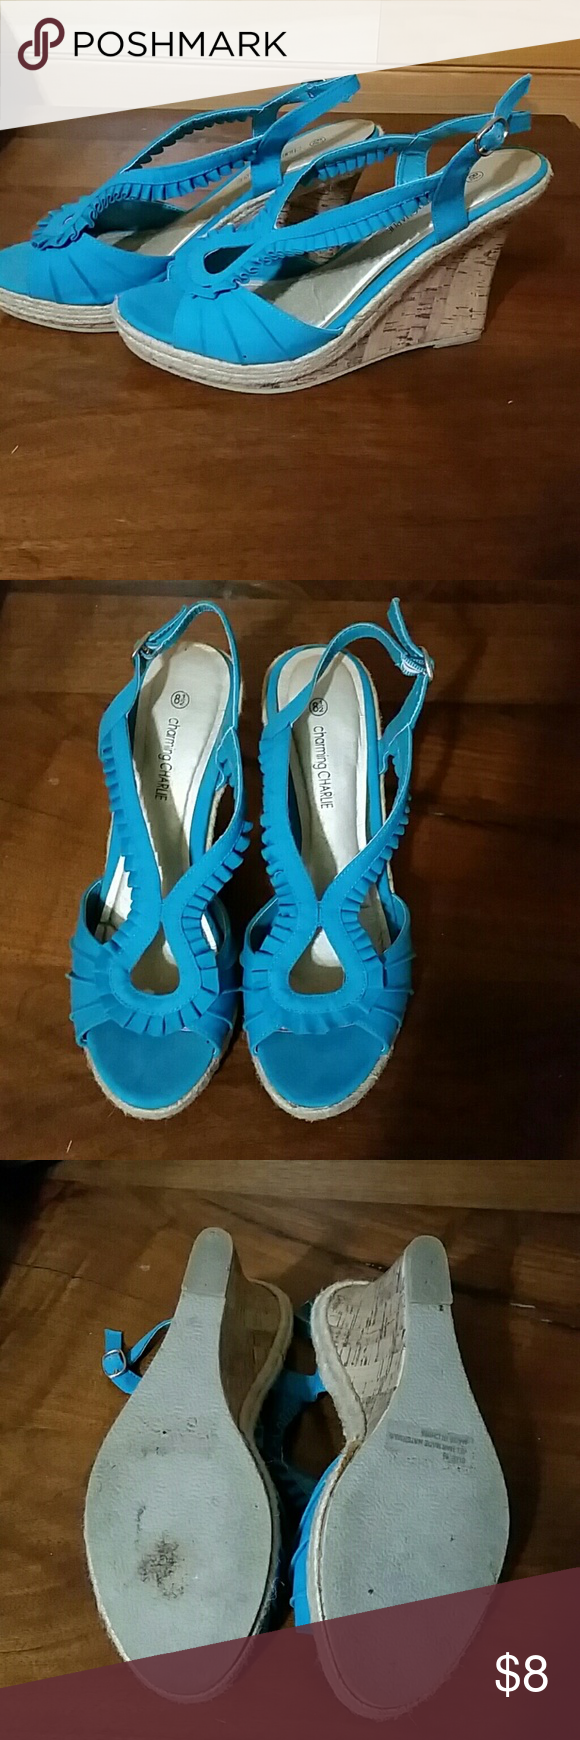 Charming Charlie Size 8.5  Teal Wedges Teal colored wedges. Worn 3 times. Excellent condition! Charming Charlie Shoes Wedges